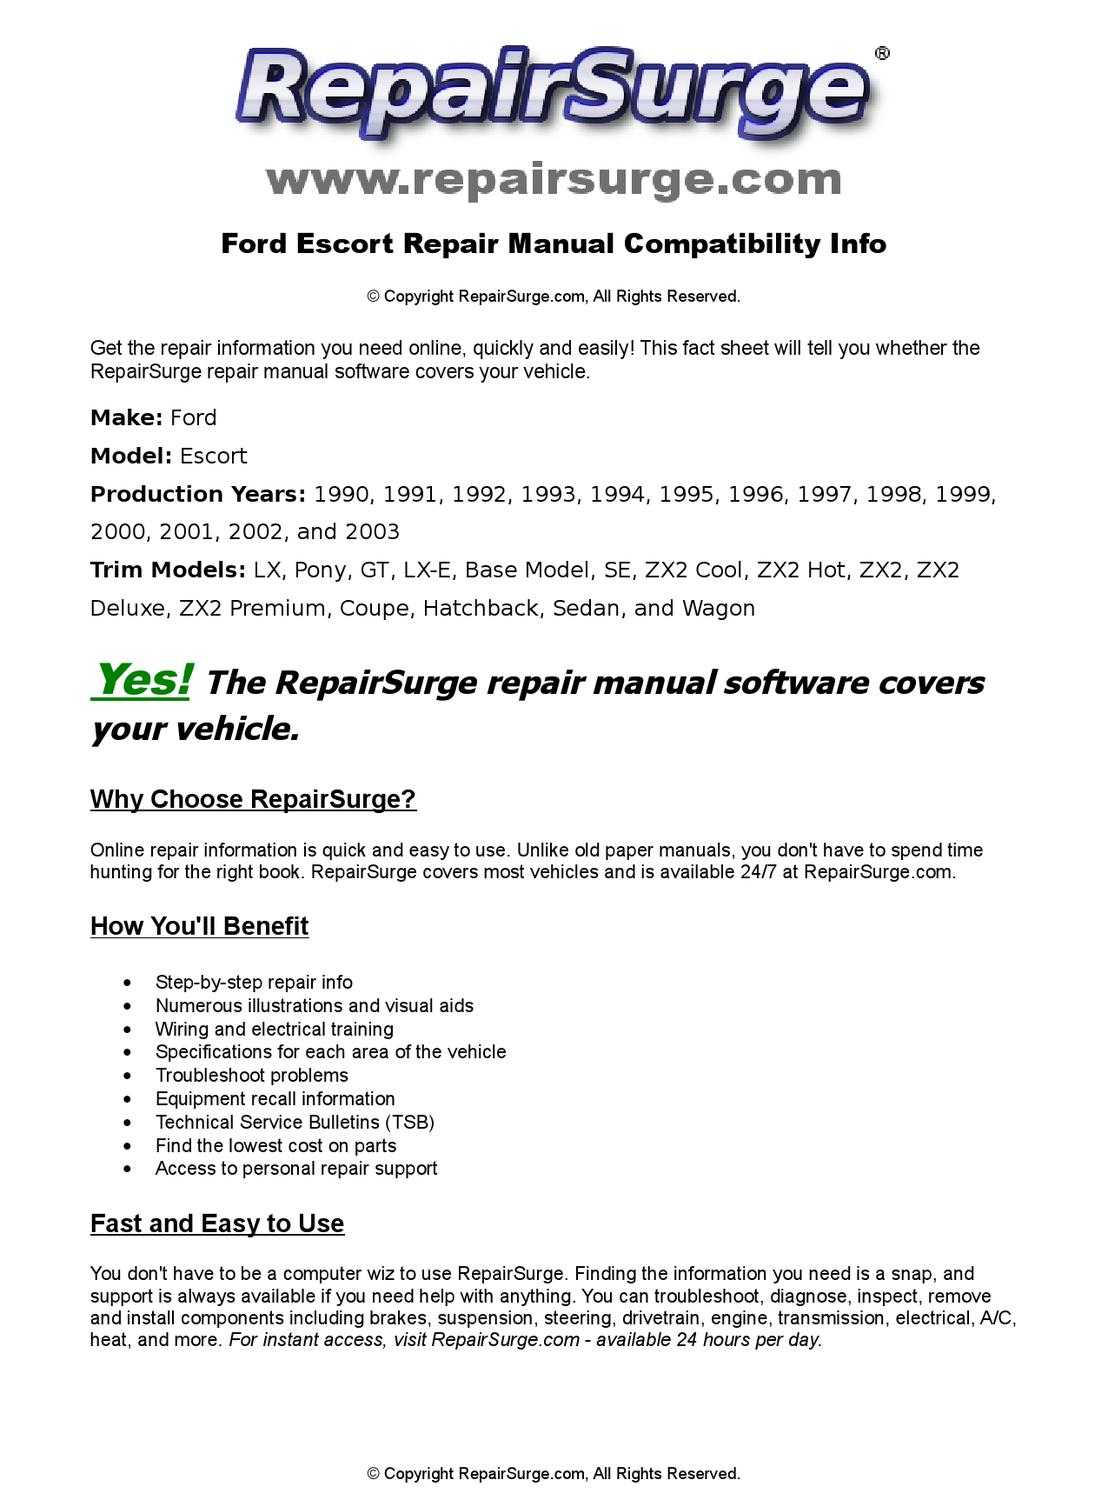 Ford Escort Online Repair Manual For 1990, 1991, 1992, 1993, 1994, 1995,  1996, 1997, 1998, 1999, 200 by RepairSurge - issuu